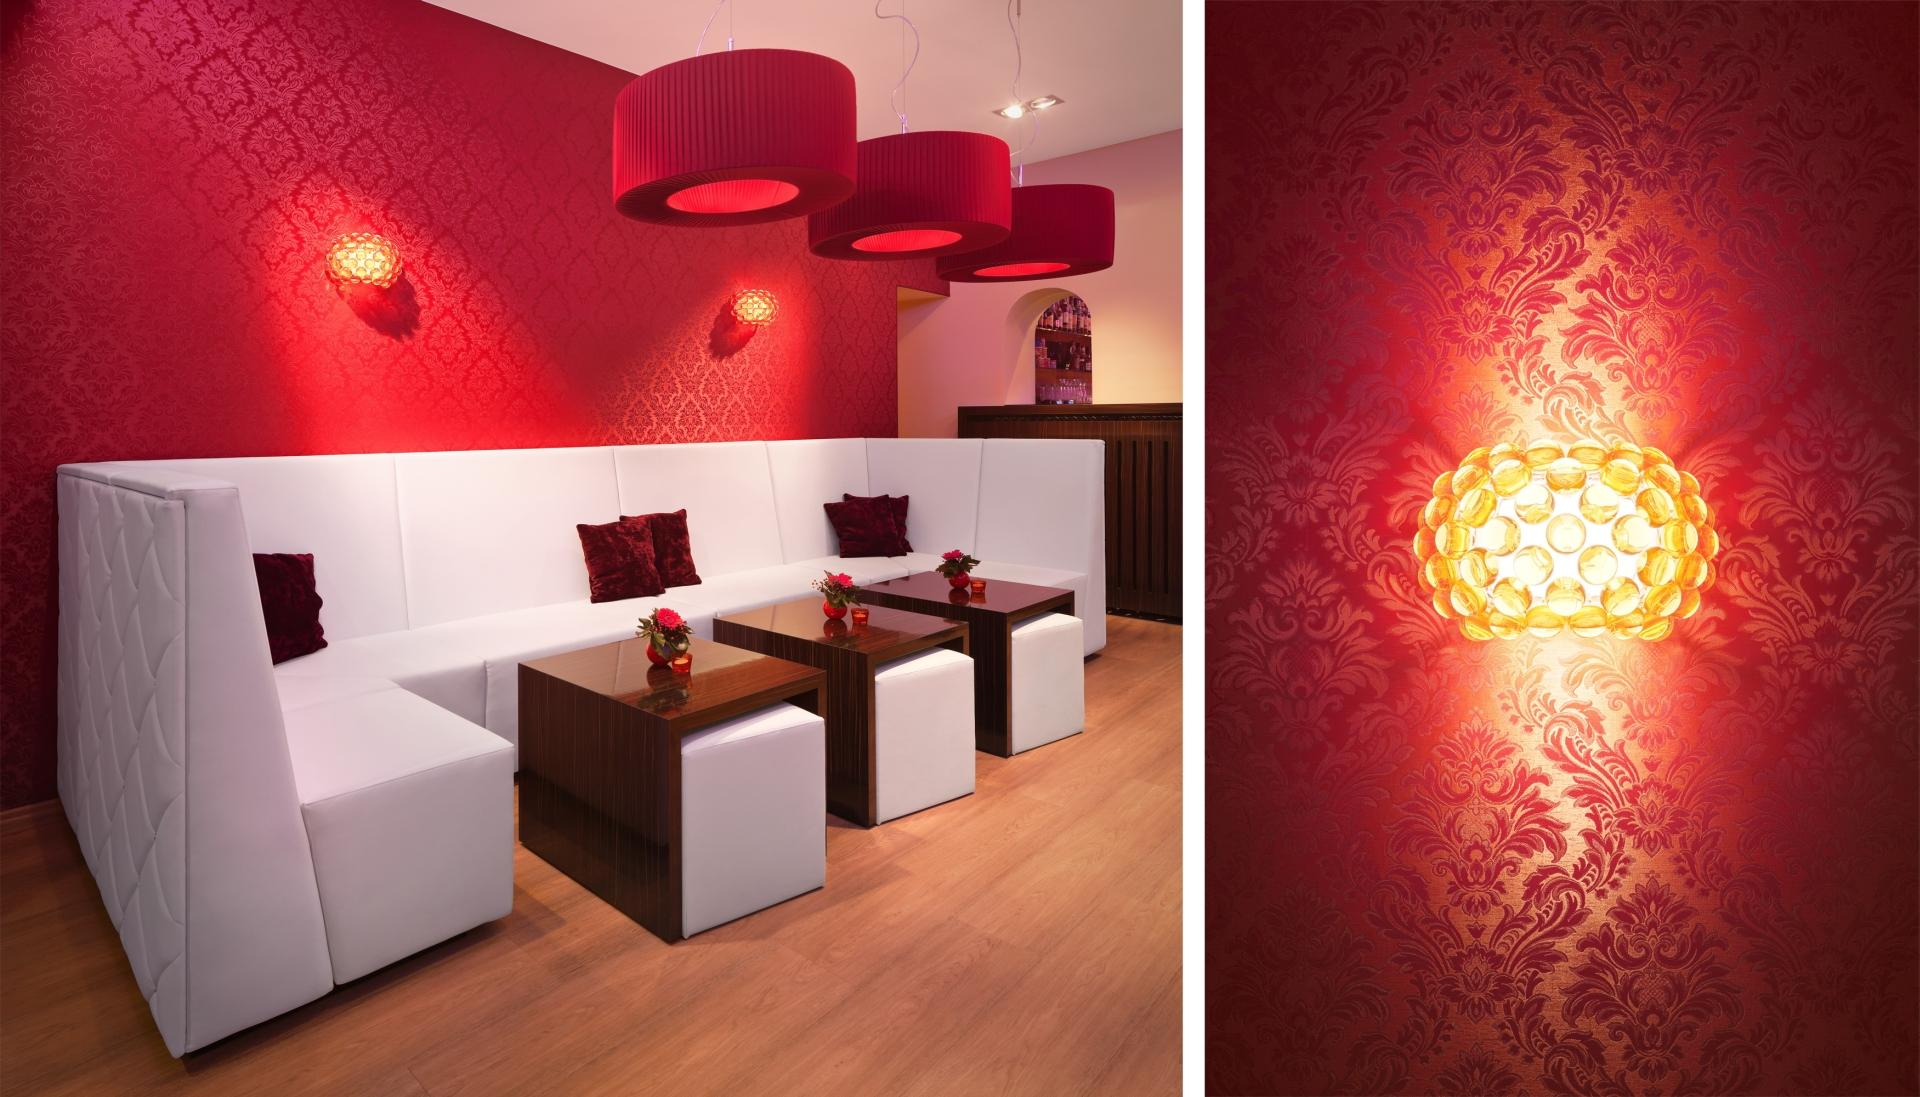 Moderner Lesesessel Rote Wandfarbe • Bilder & Ideen • Couch